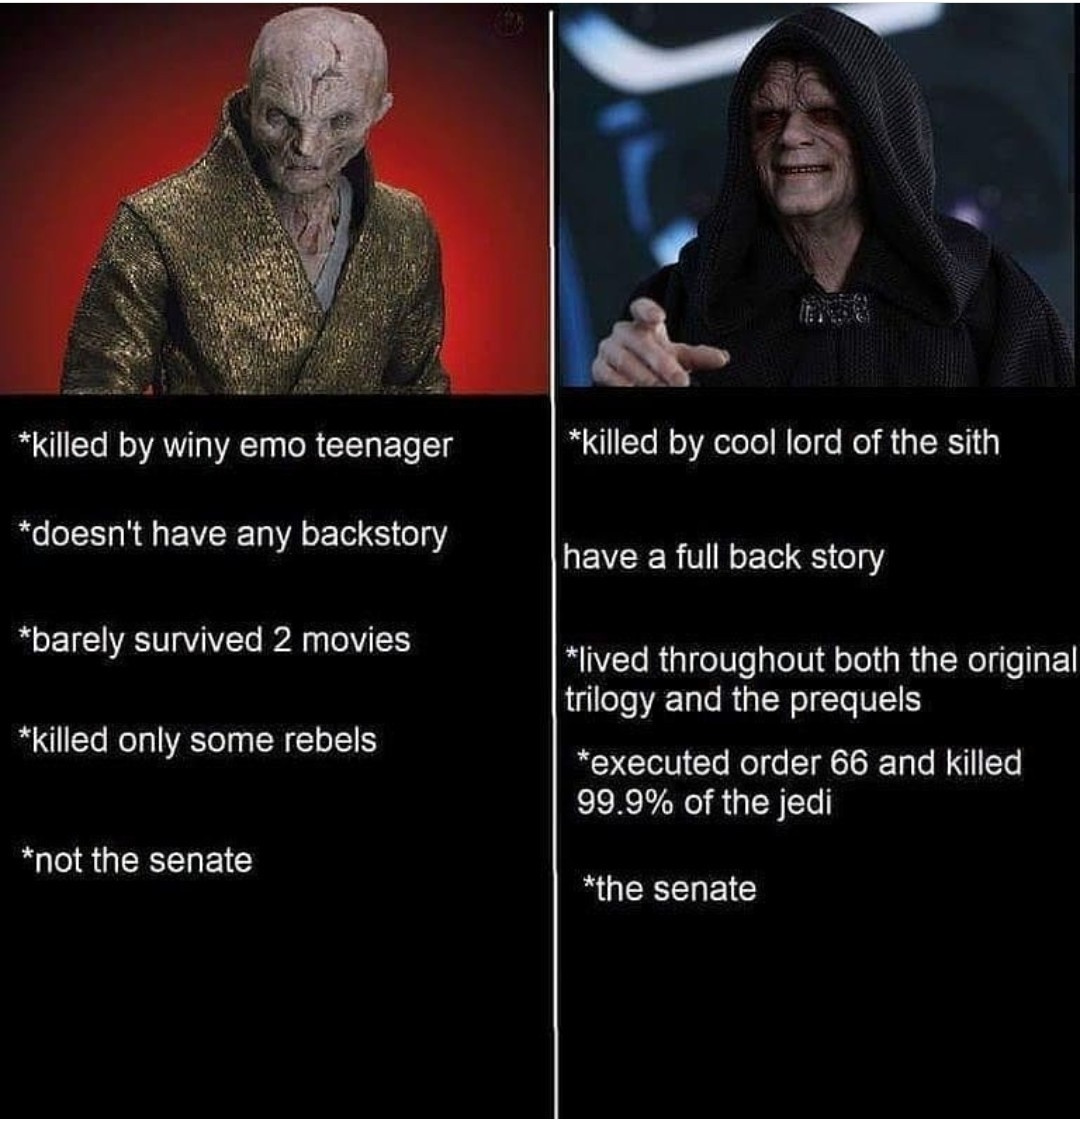 The Senate - meme